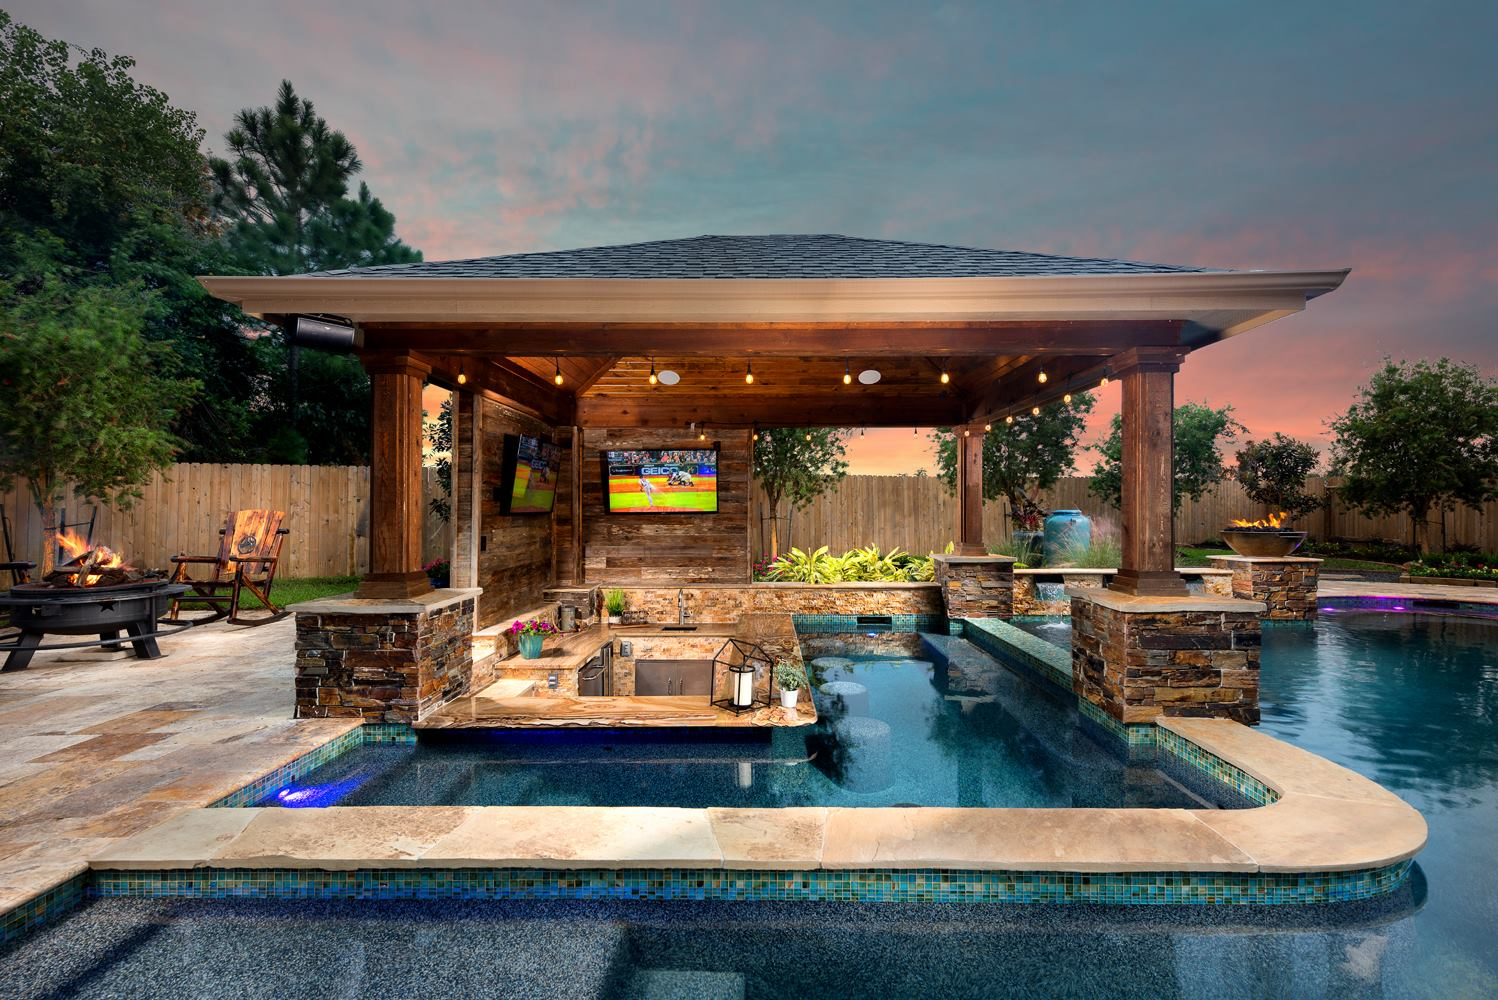 Outdoor Living Photos Houston | Outdoor Kitchen League City on Outdoor Kitchen With Pool Ideas id=75554